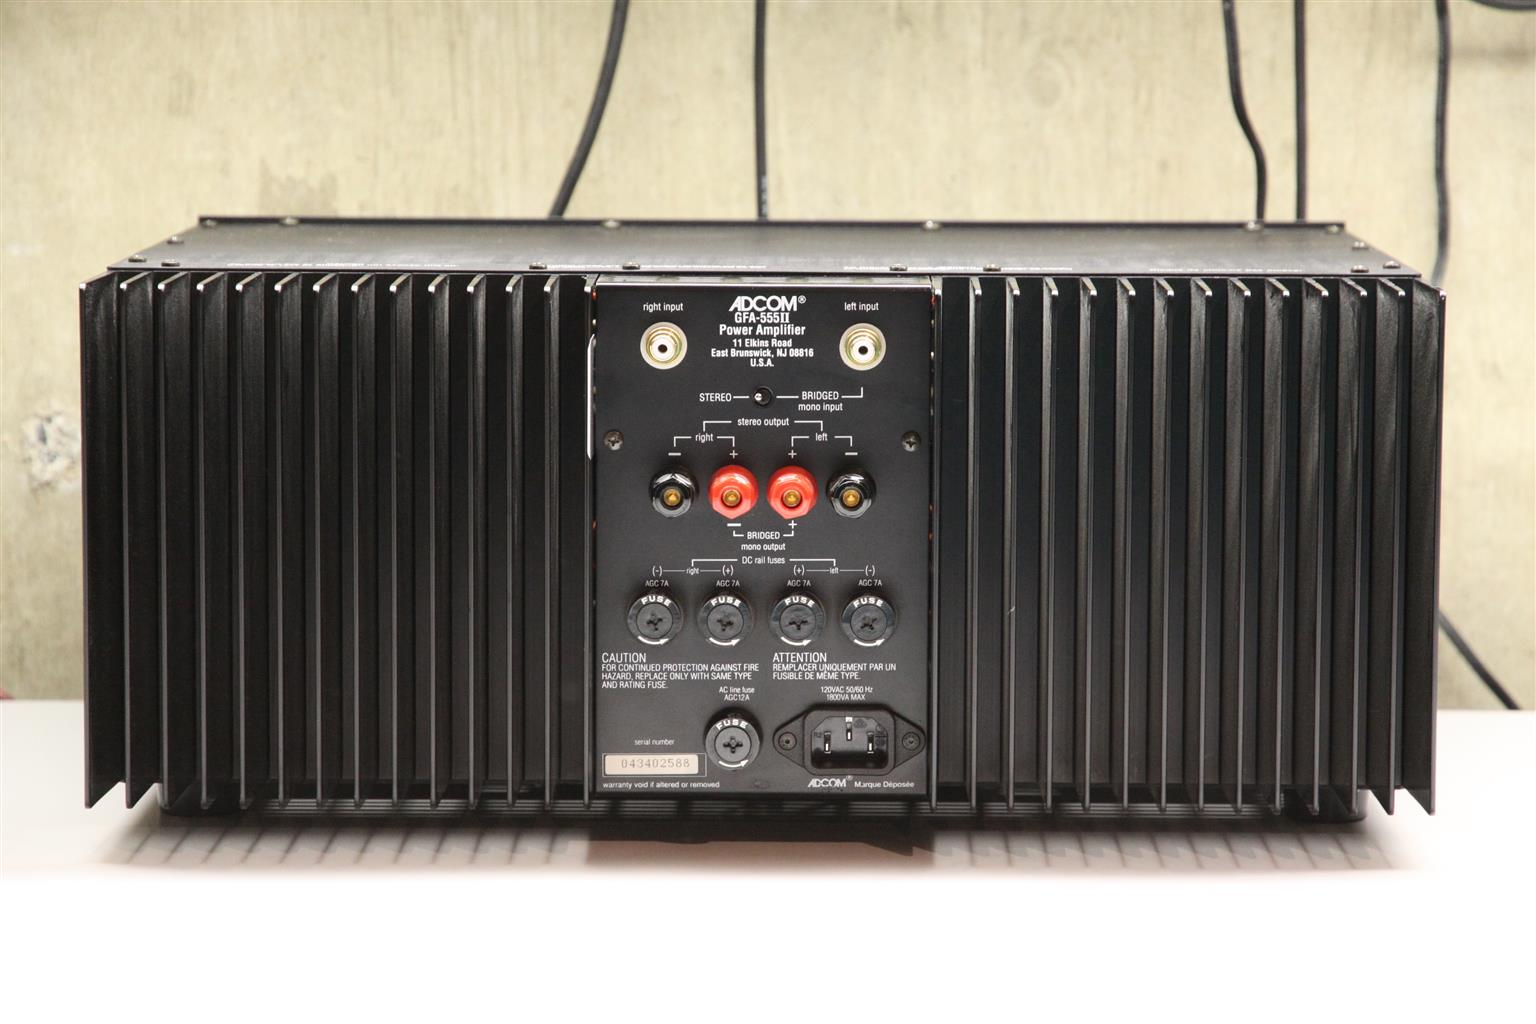 ADCOM GFA 555 MKII STEREO POWER AMPLIFIER